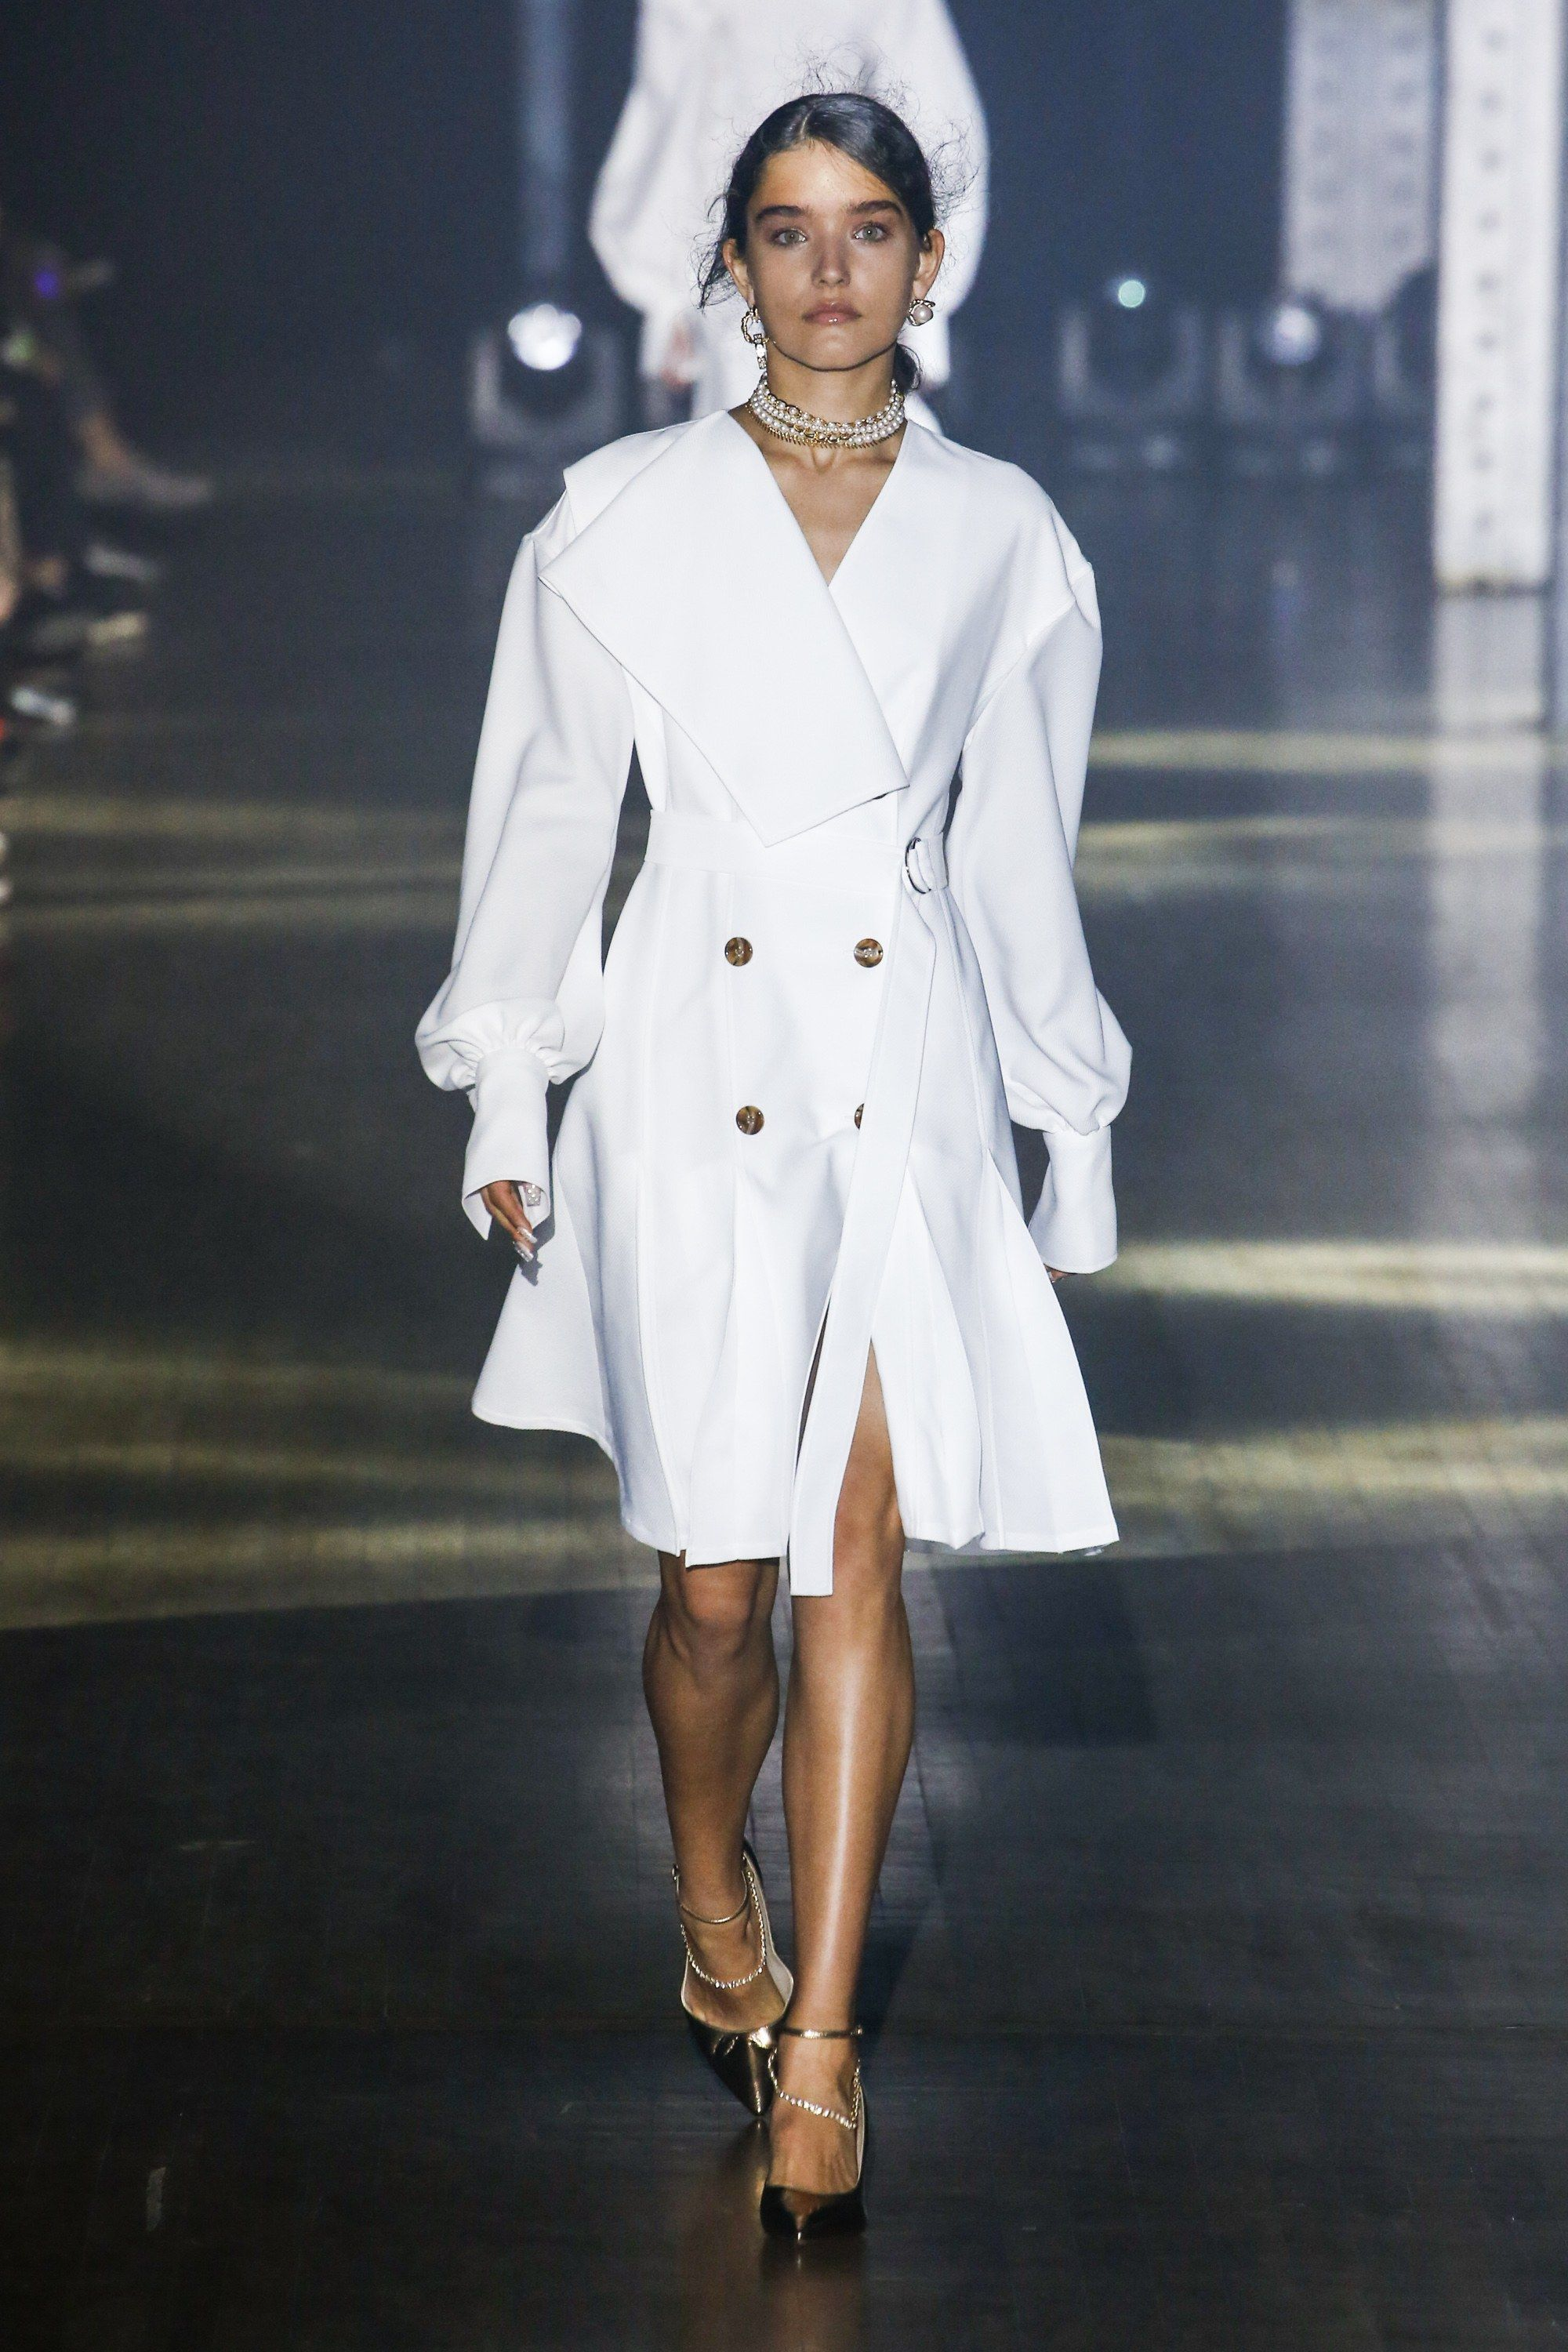 70fe38ff95 Love this crisp white coat dress by Adeam Spring - 2019 Ready-to-Wear  Collection - Vogue